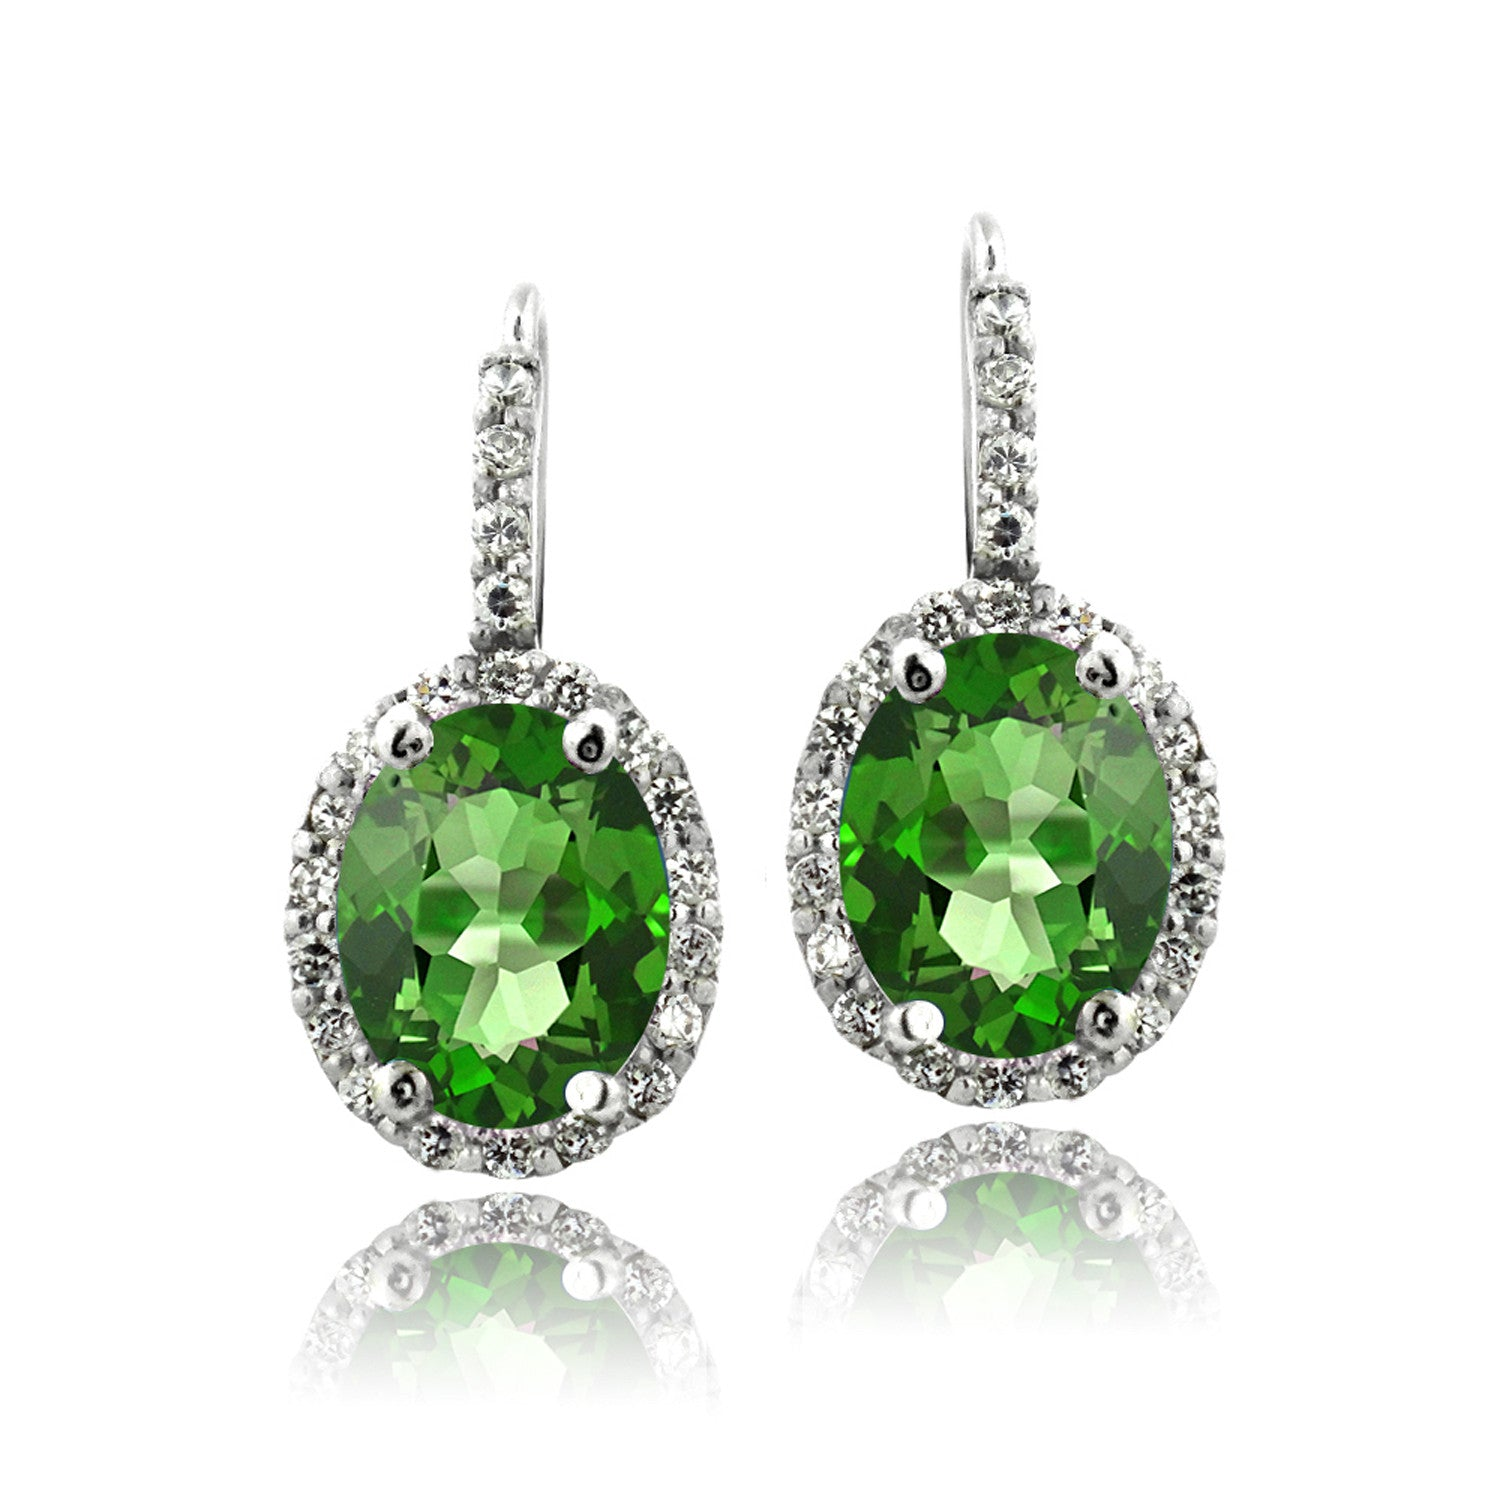 Oval Cut Gemstone Accent Sterling Silver Leverback Birthstone Earrings - May Created Emerald